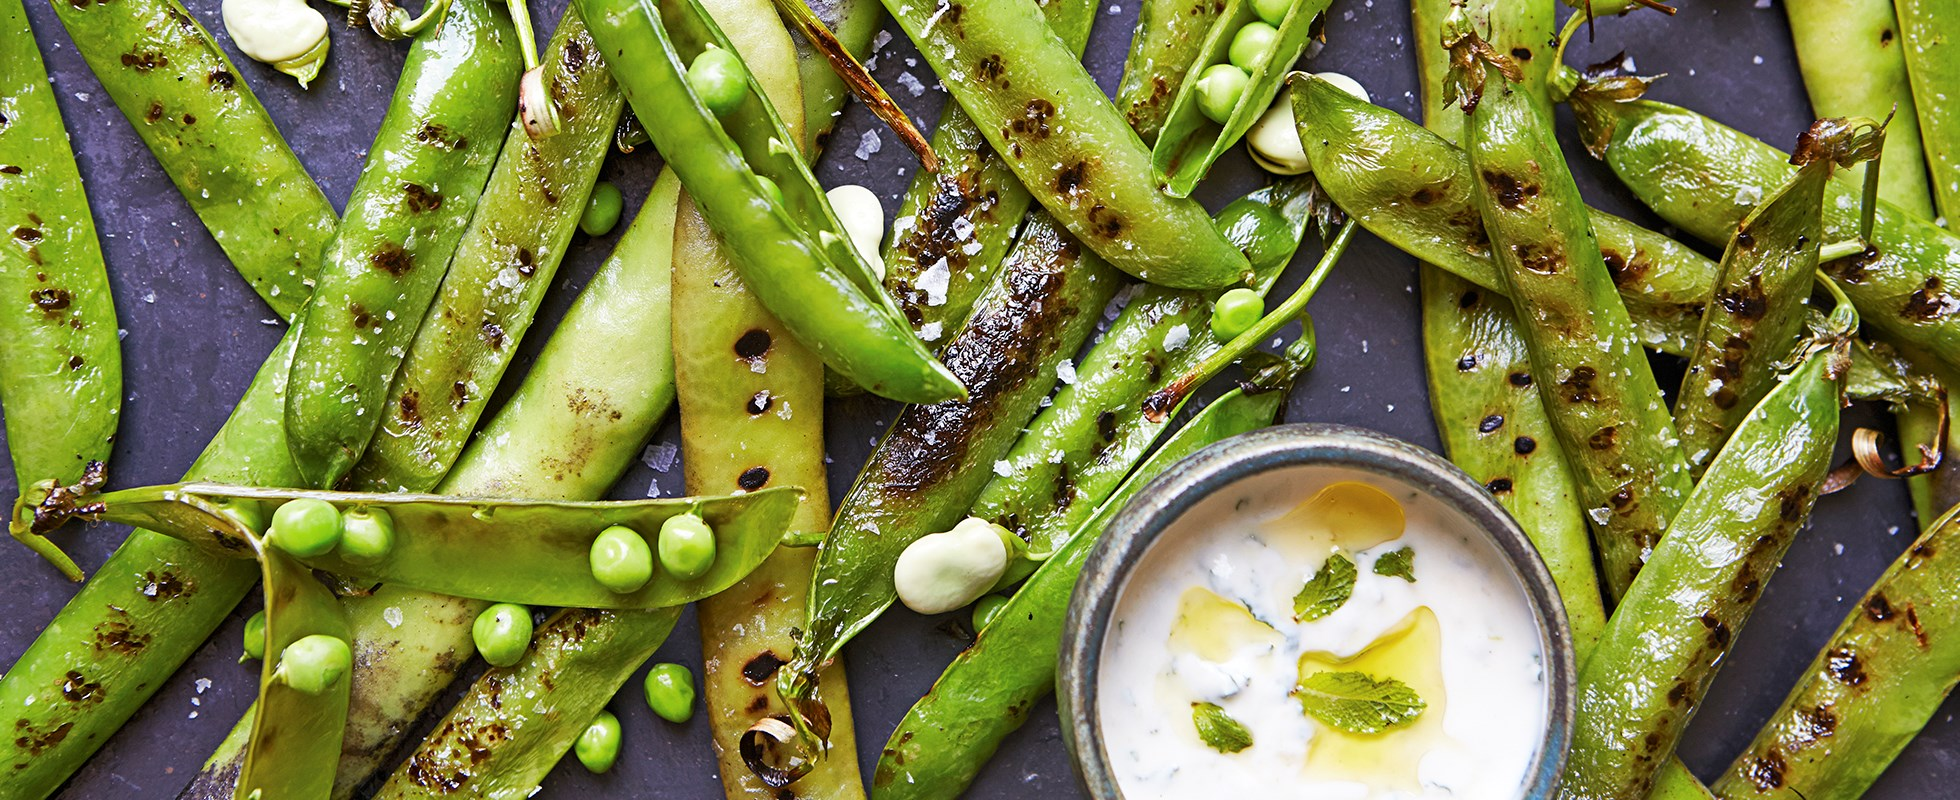 Grilled peas and broad beans with minted yogurt sauce